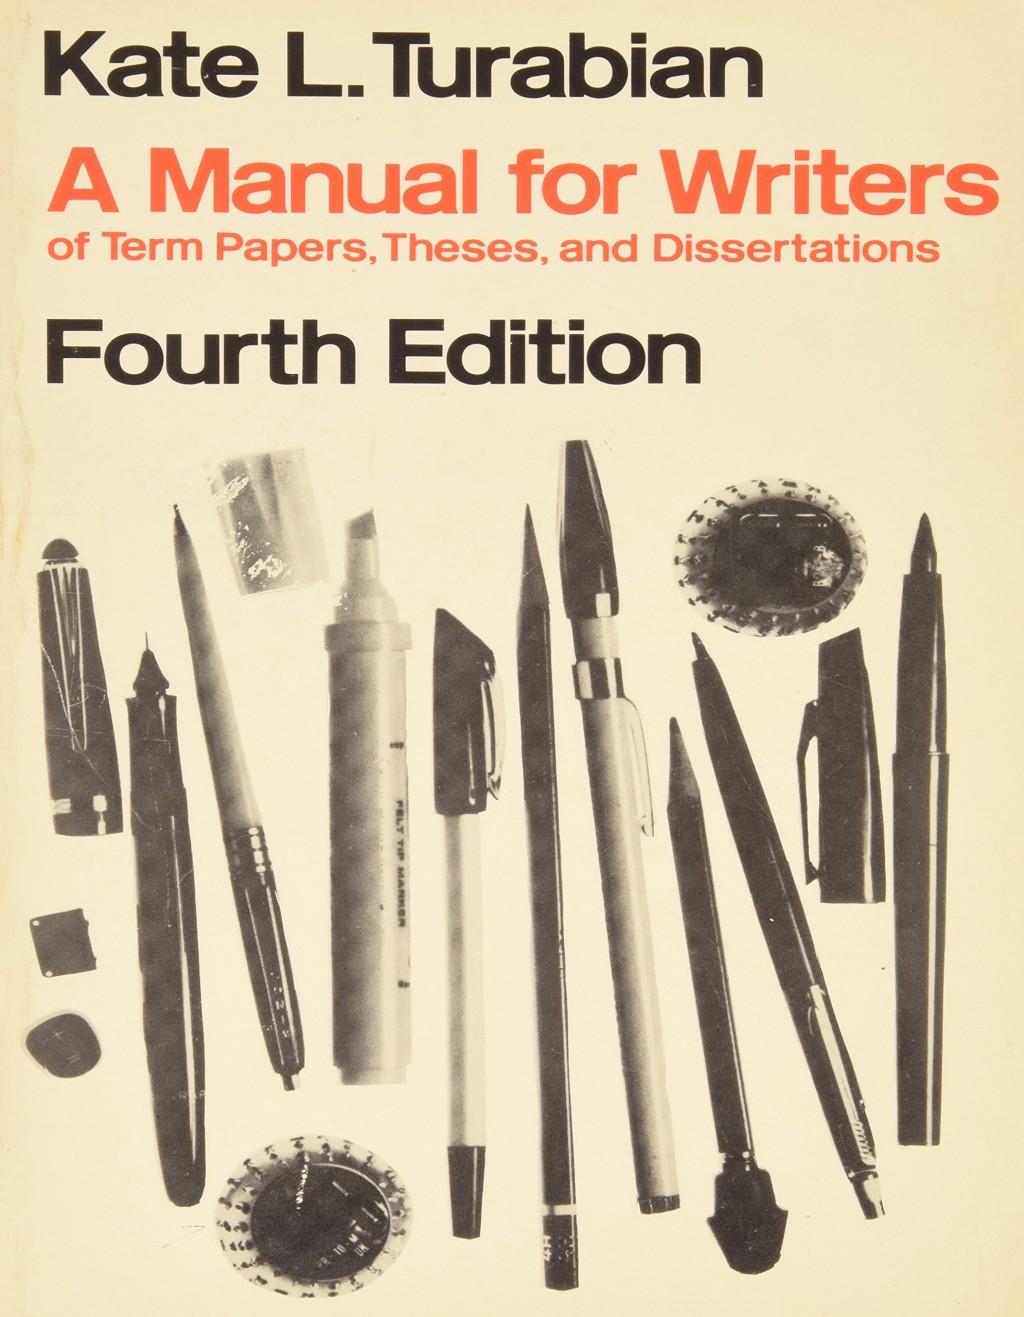 003 Manual For Writers Of Research Papers Theses And Dissertations Paper Fearsome A Ed 8 Large